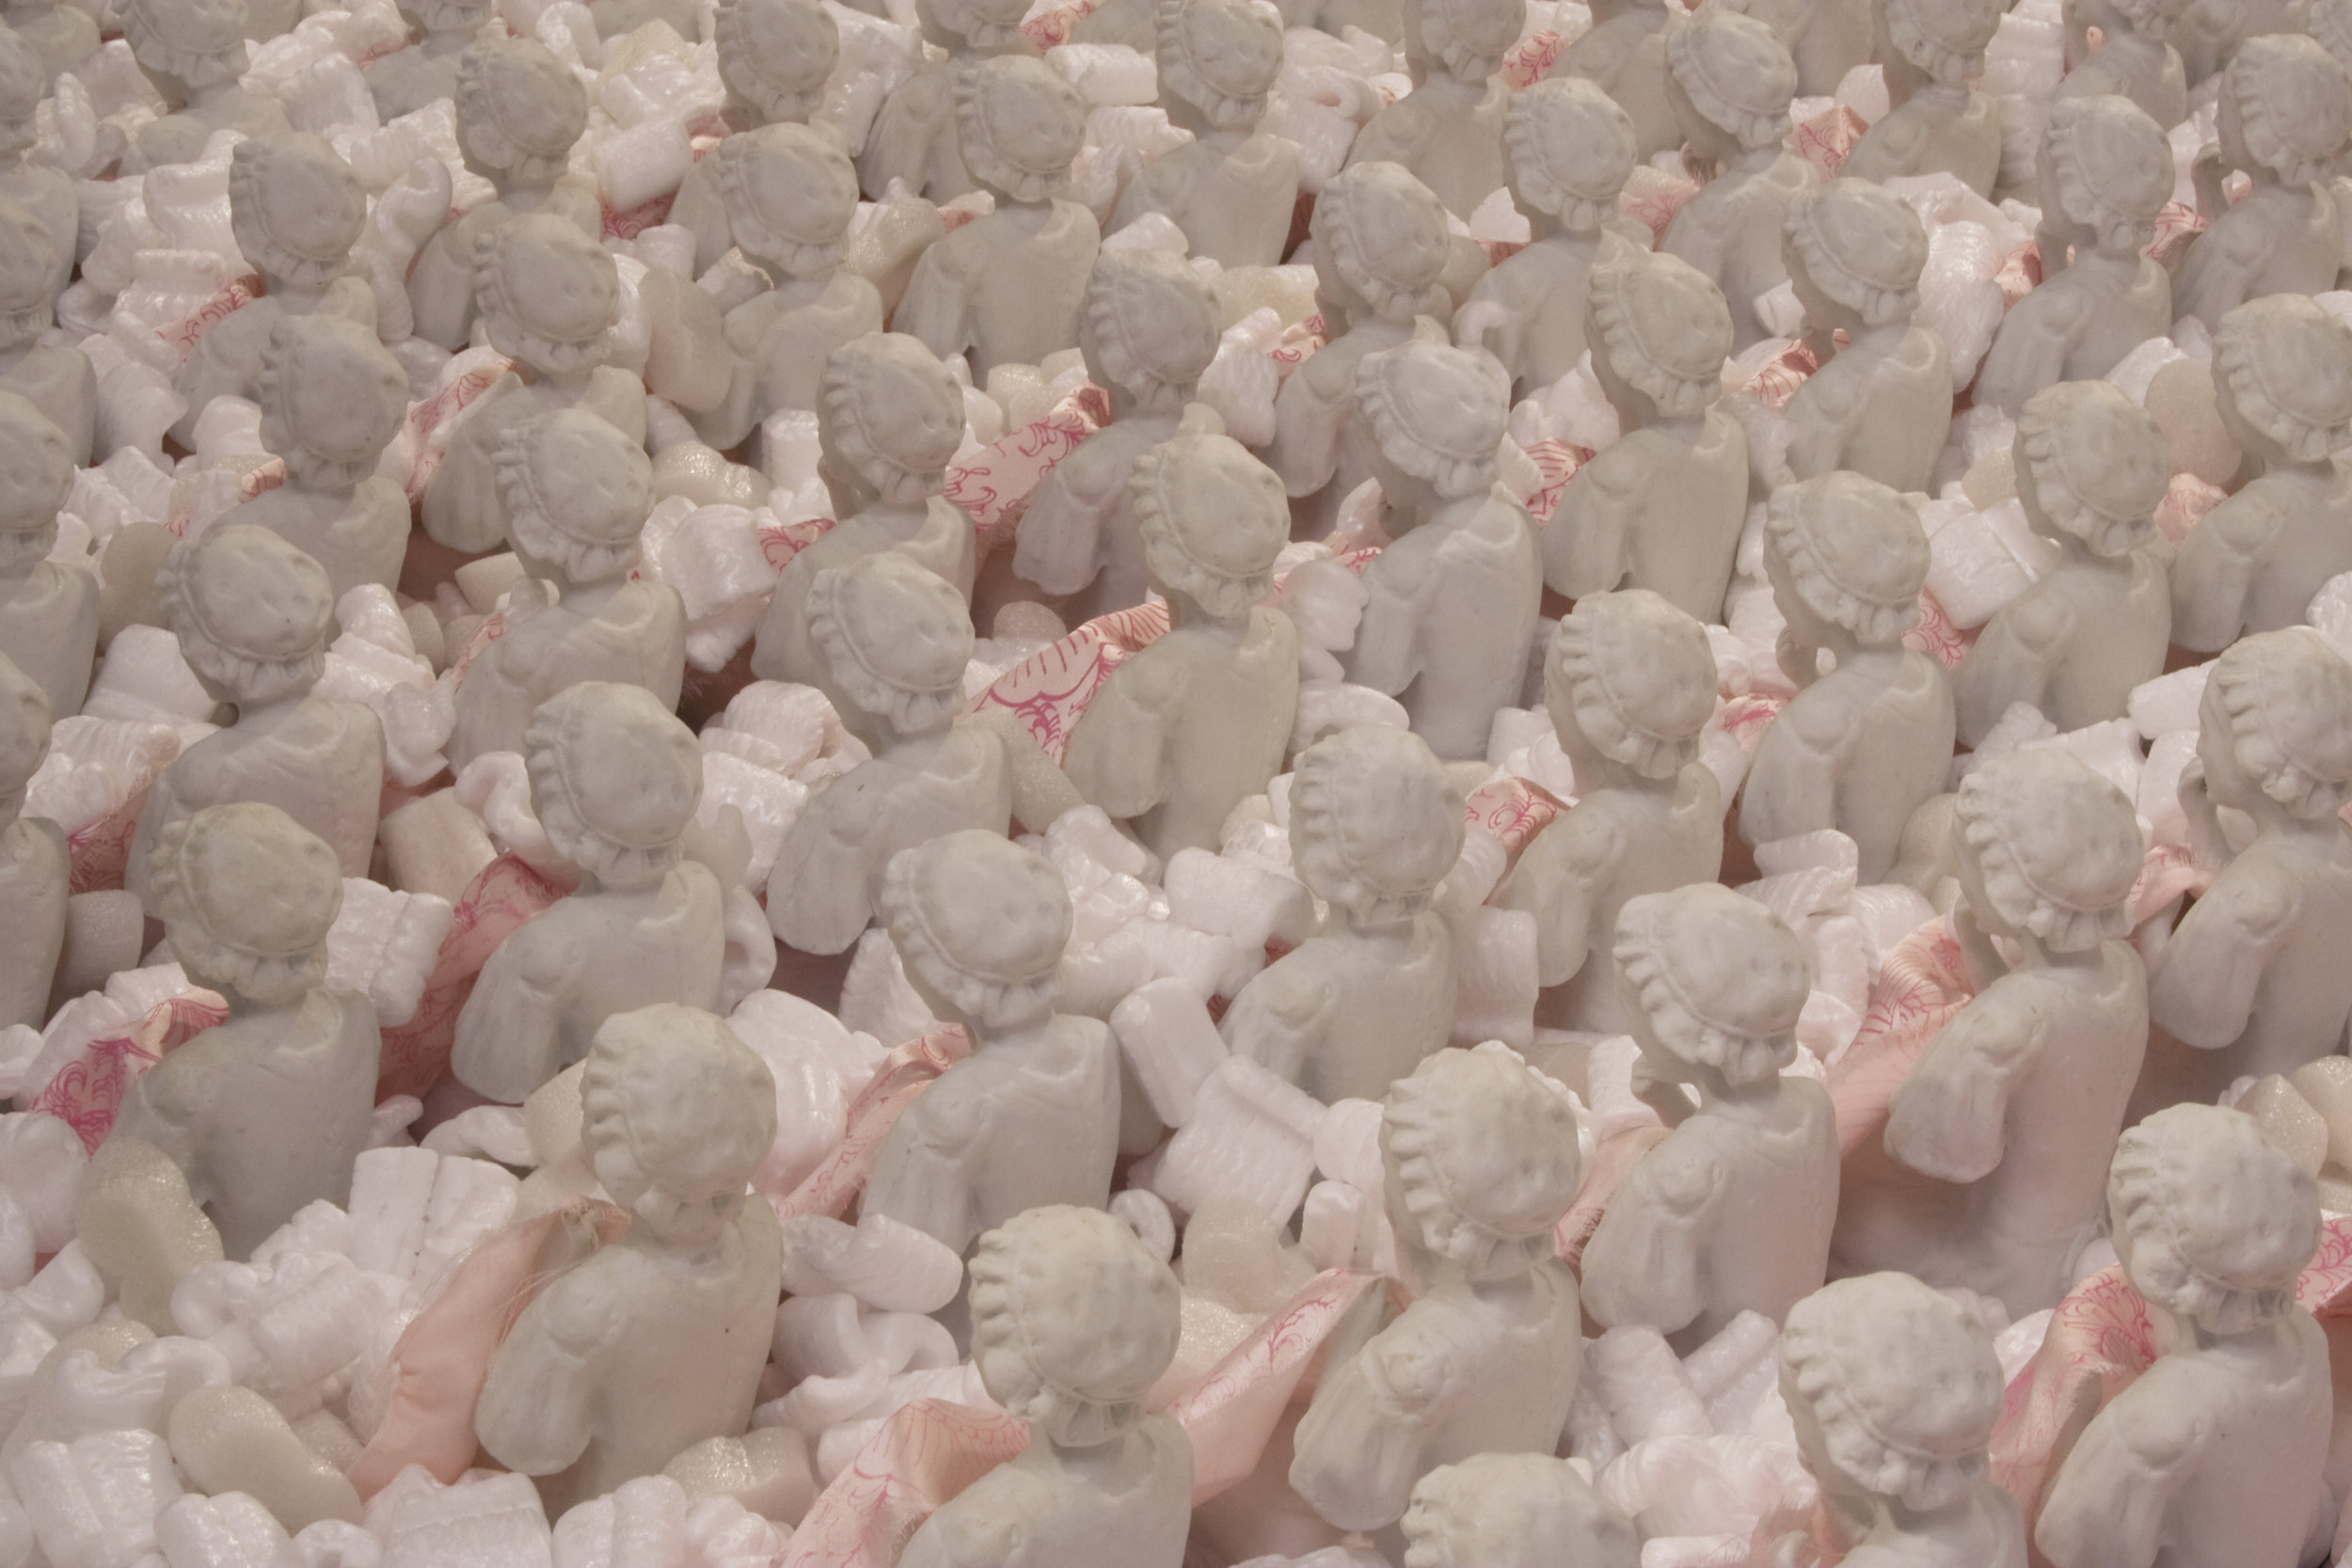 "Over-Identification with the Other  450 unglazed outsourced porcelain figurines made in China, silk, screen-printed silk, cardboard, styrene peanuts 39"" h x 9' w x 9' d 2008"